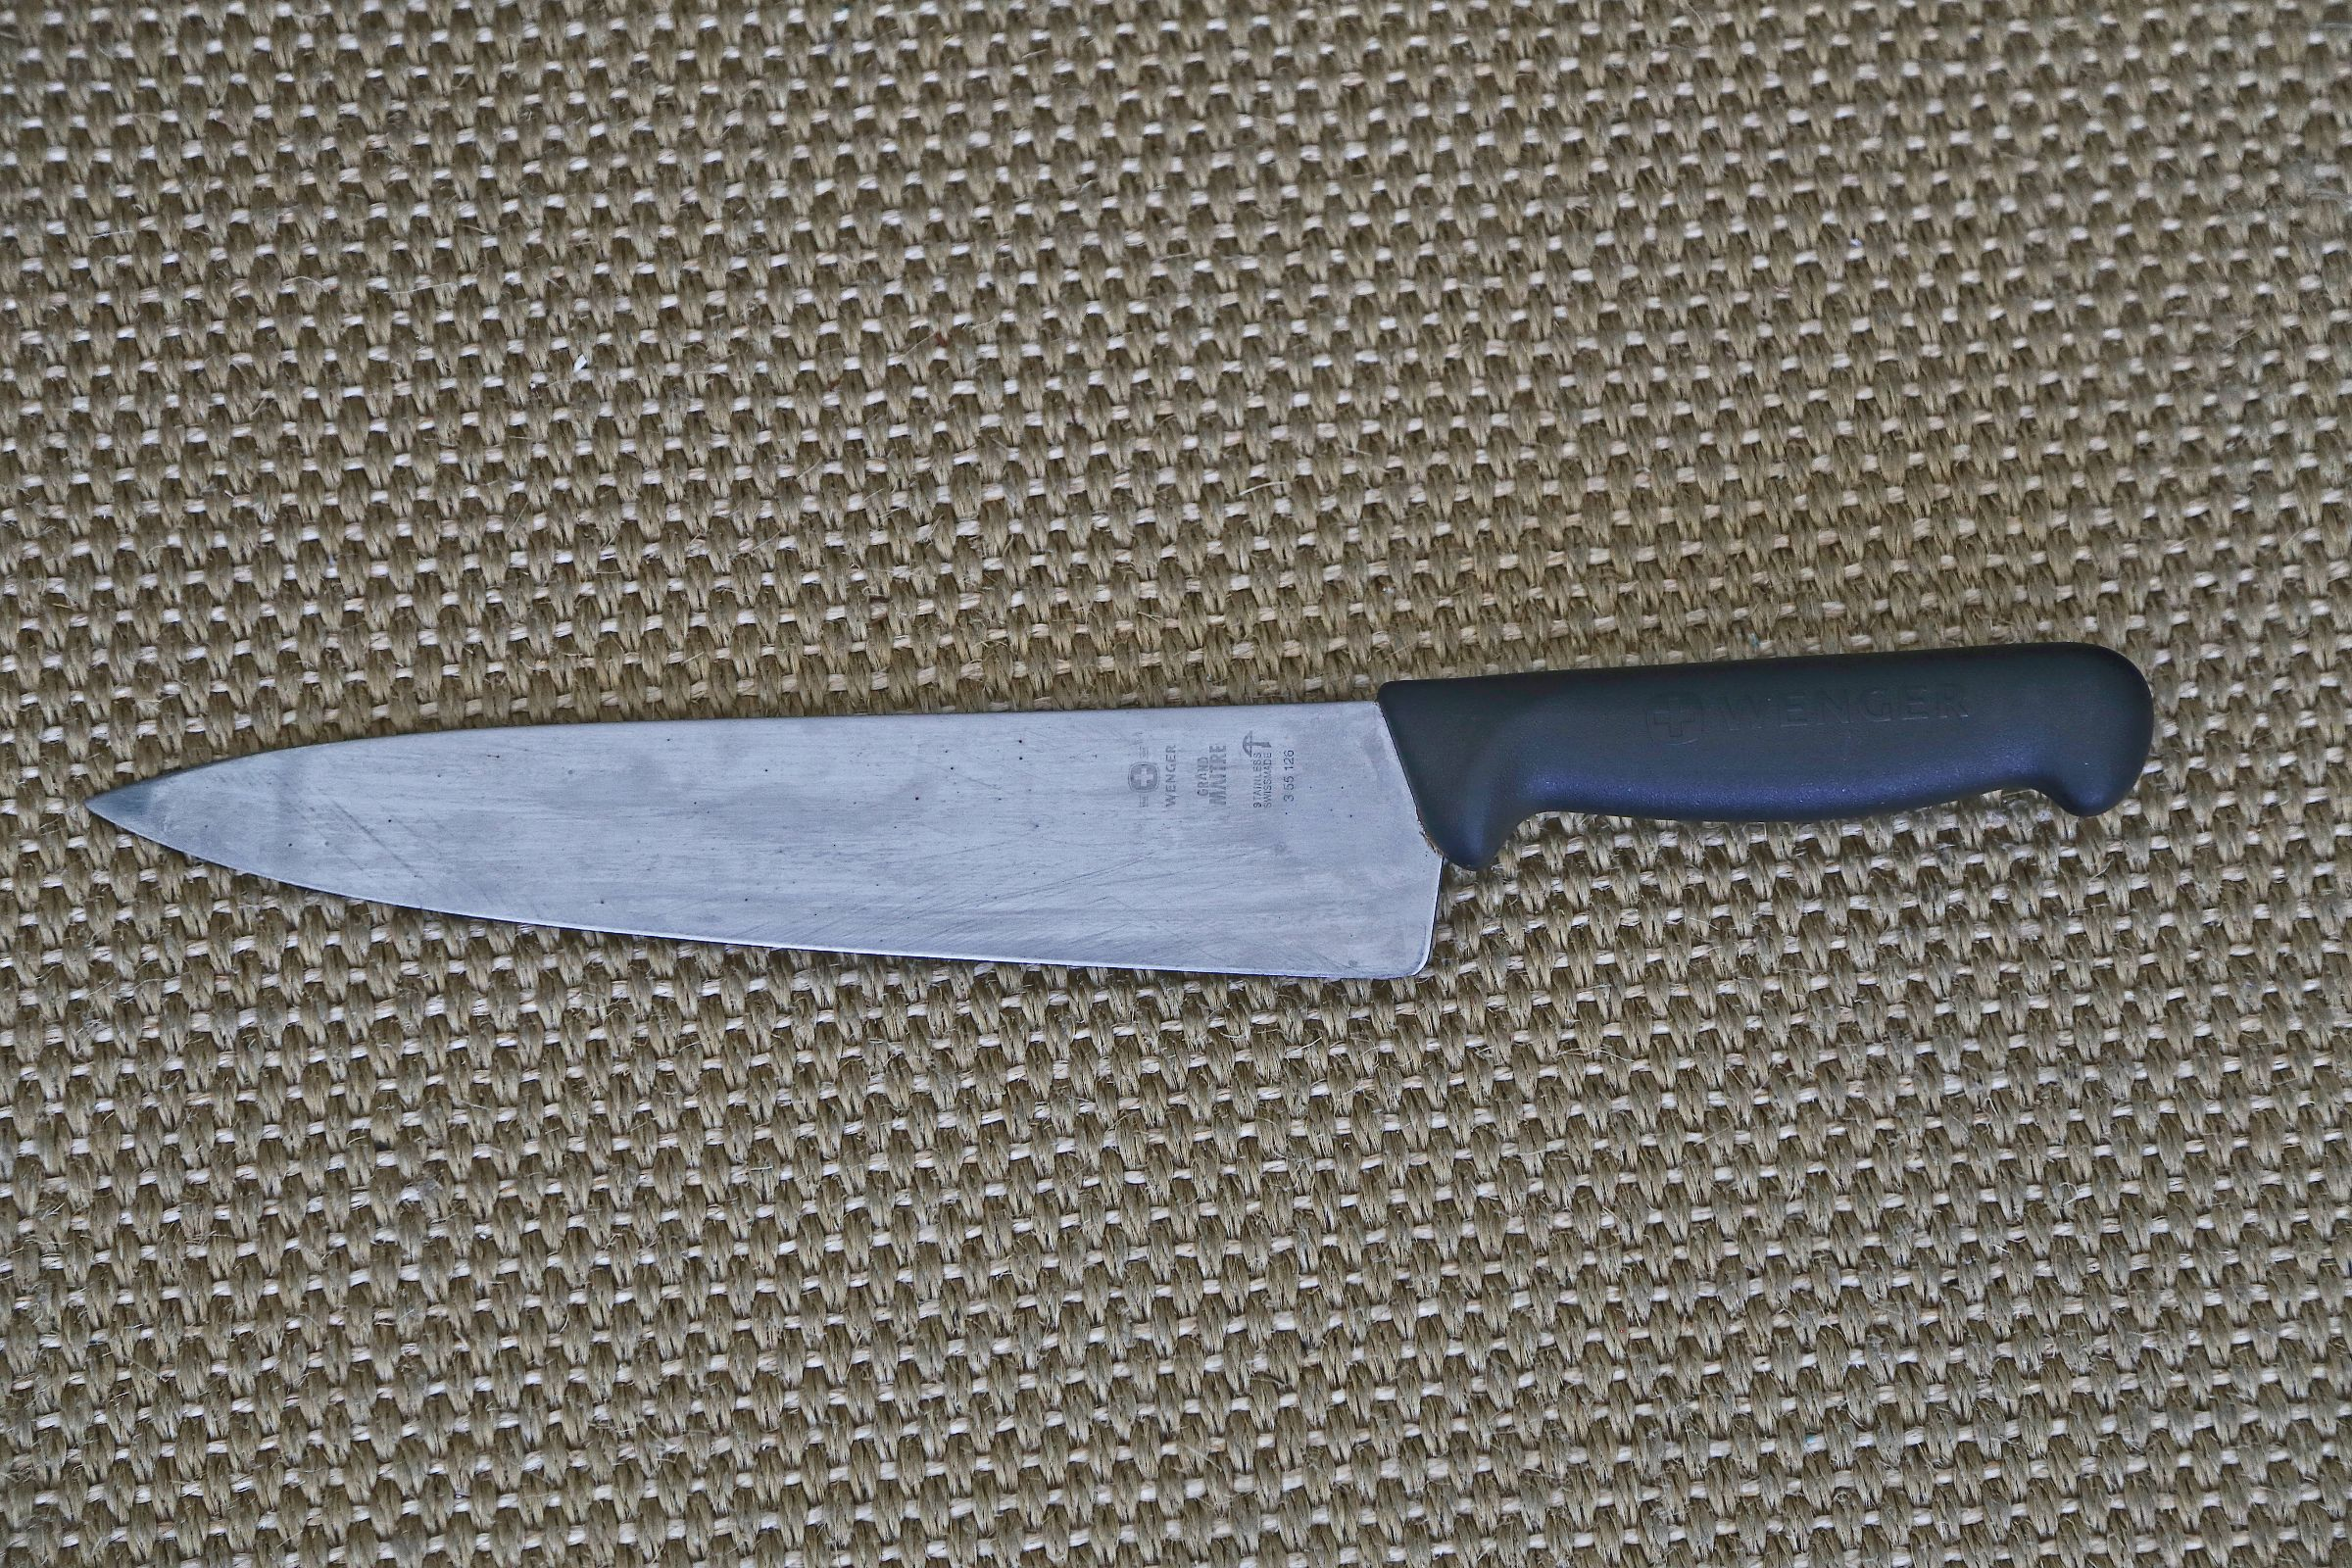 Wenger Grand Maitre Chef Knife, 250mm